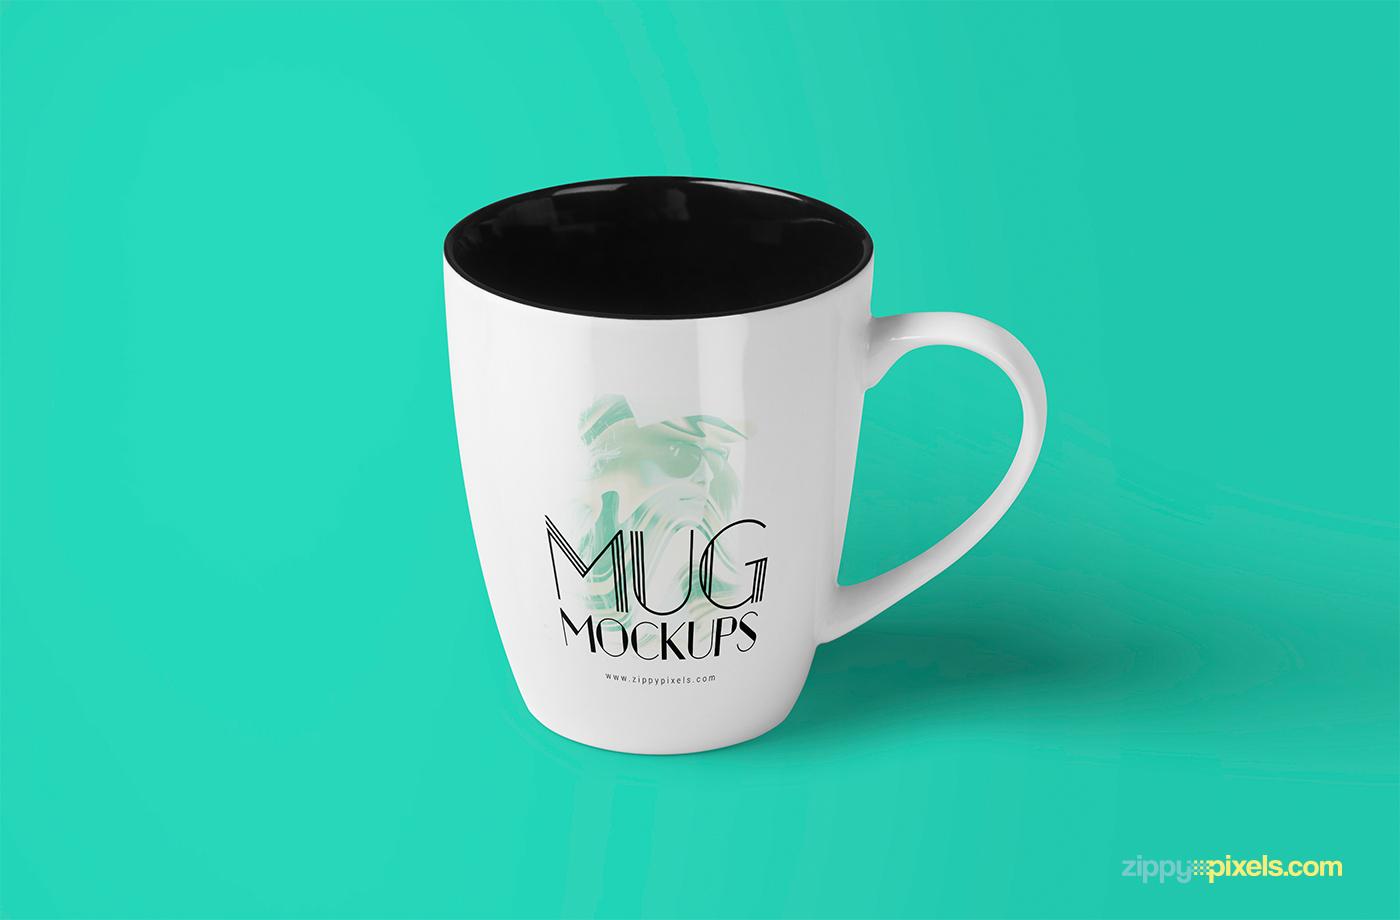 3 free outstanding coffee cup mockups on behance for Behance mockups